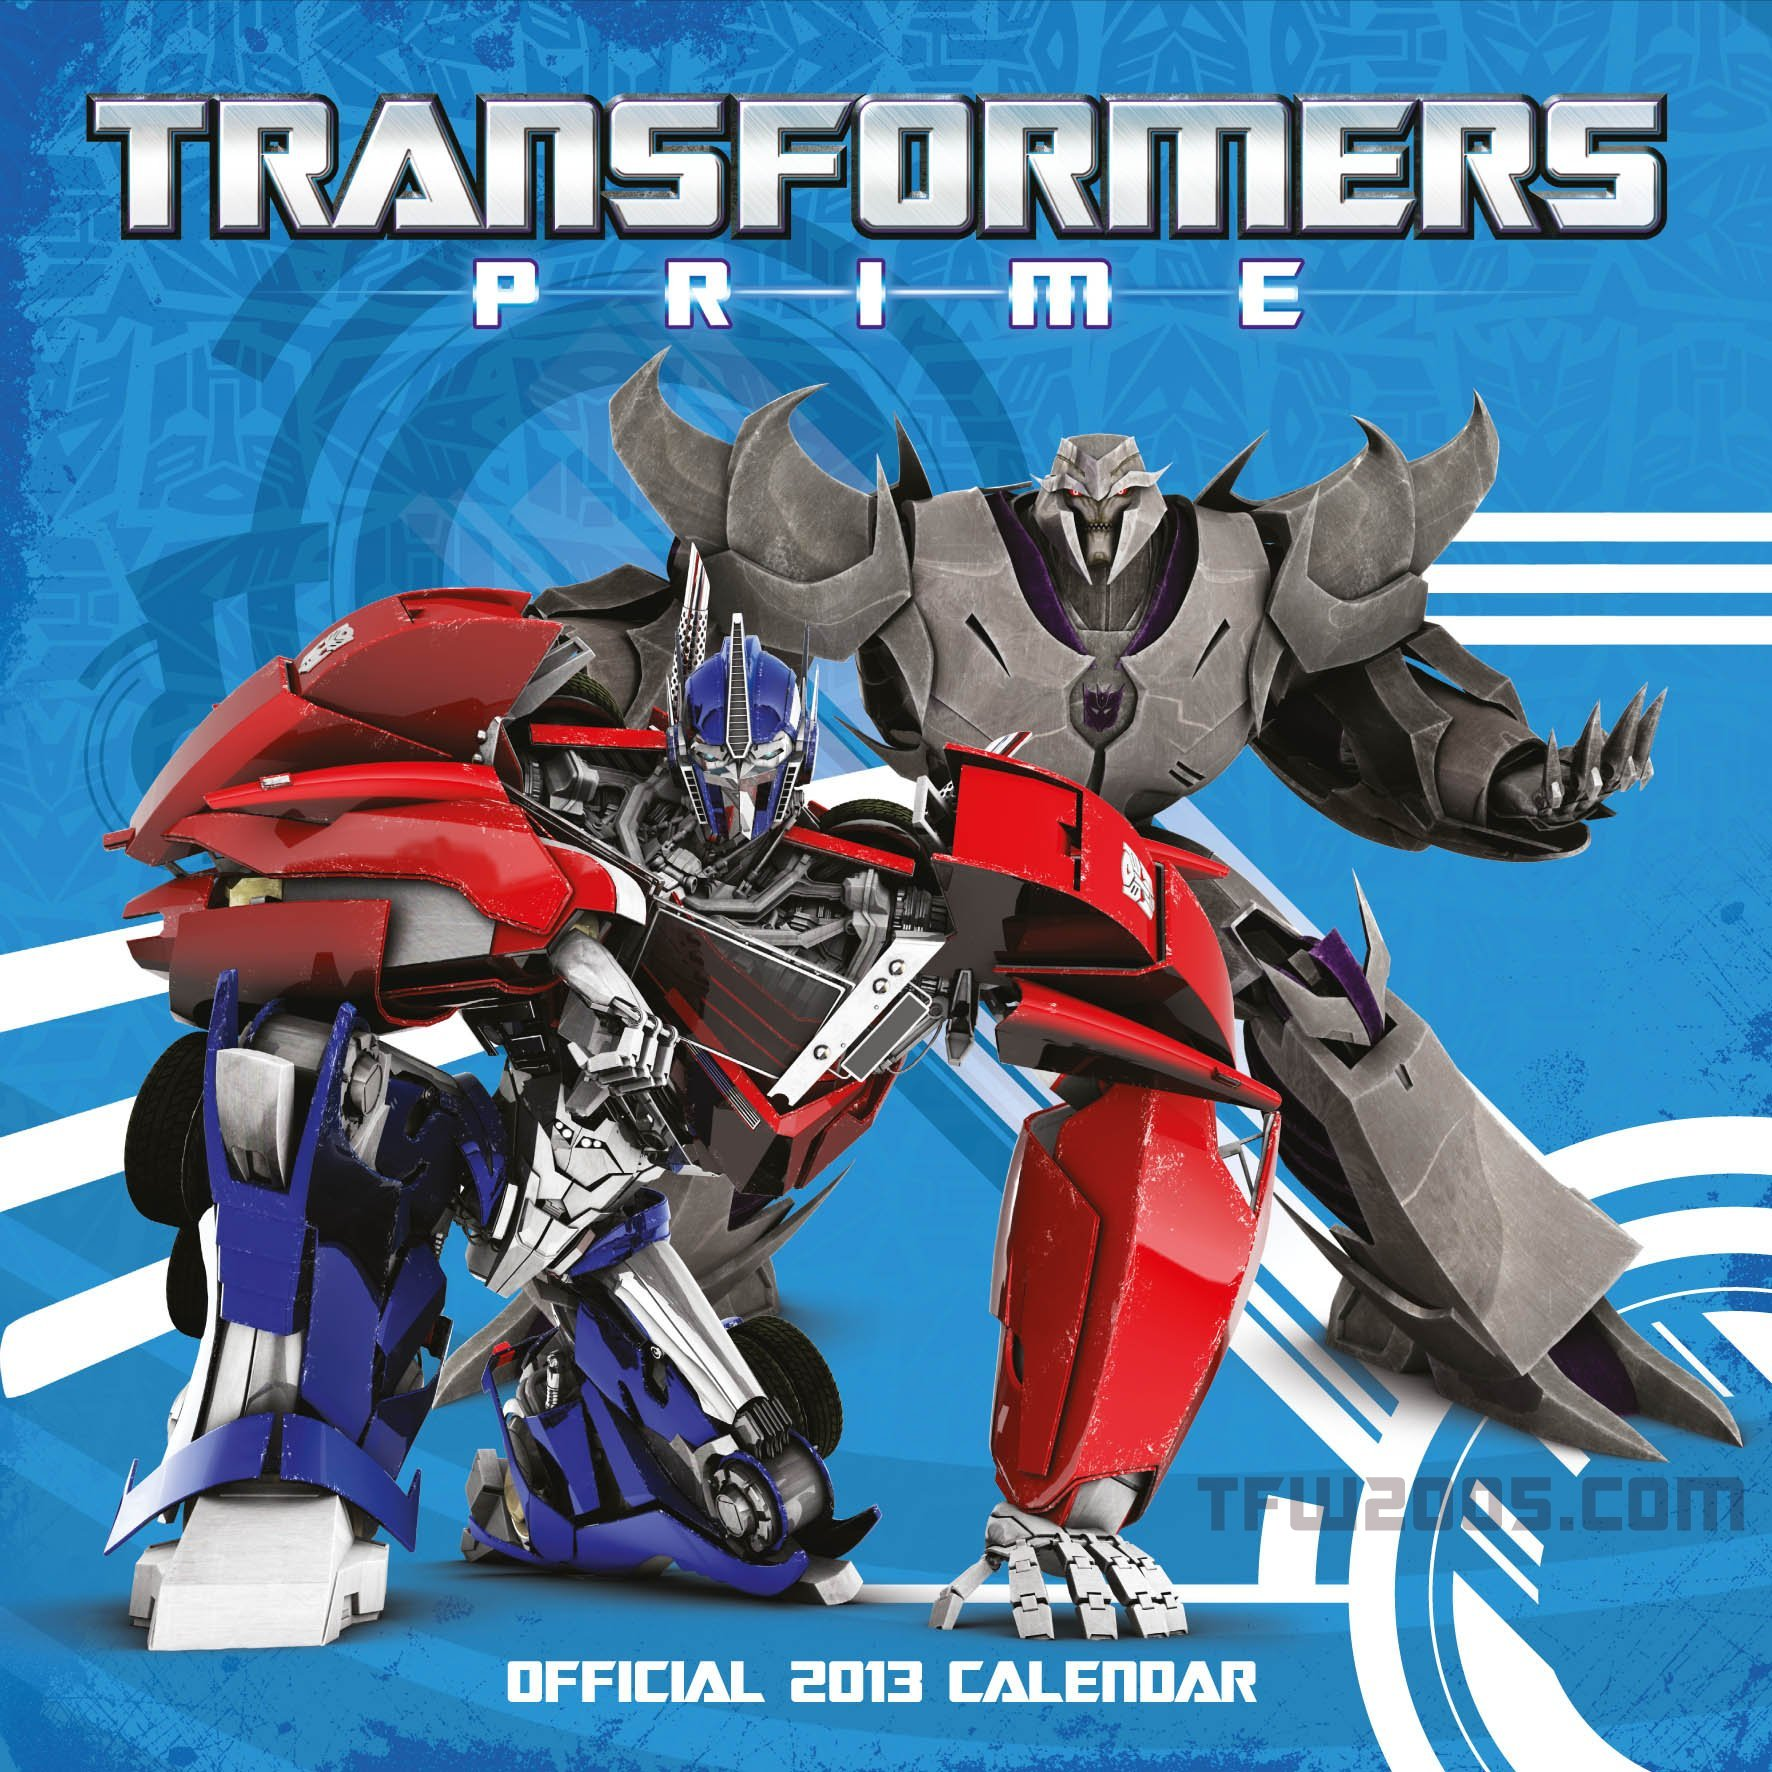 Transformers-Prime-2013-Calendar-Season-2-Comic-Book-TFW2005-1